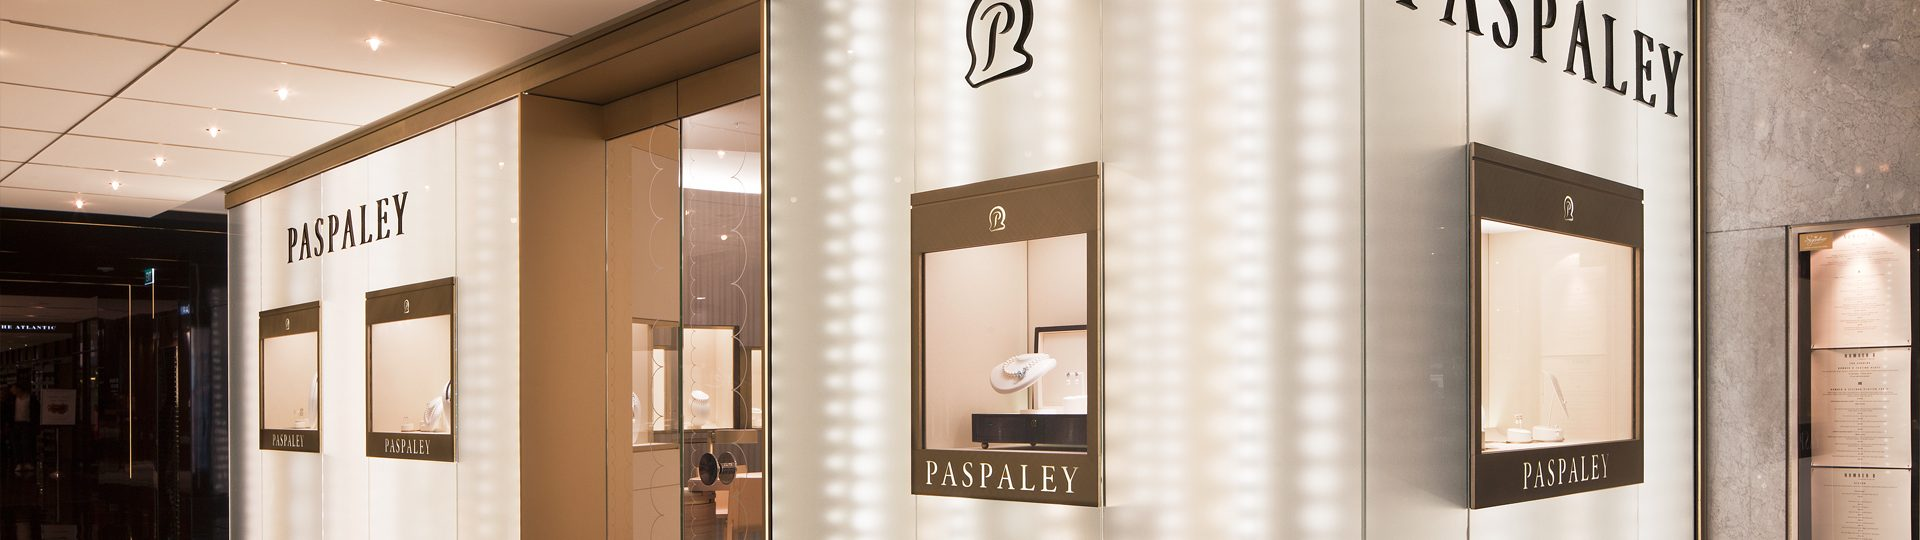 Specialist lighting design | Paspaley | The Light Lab